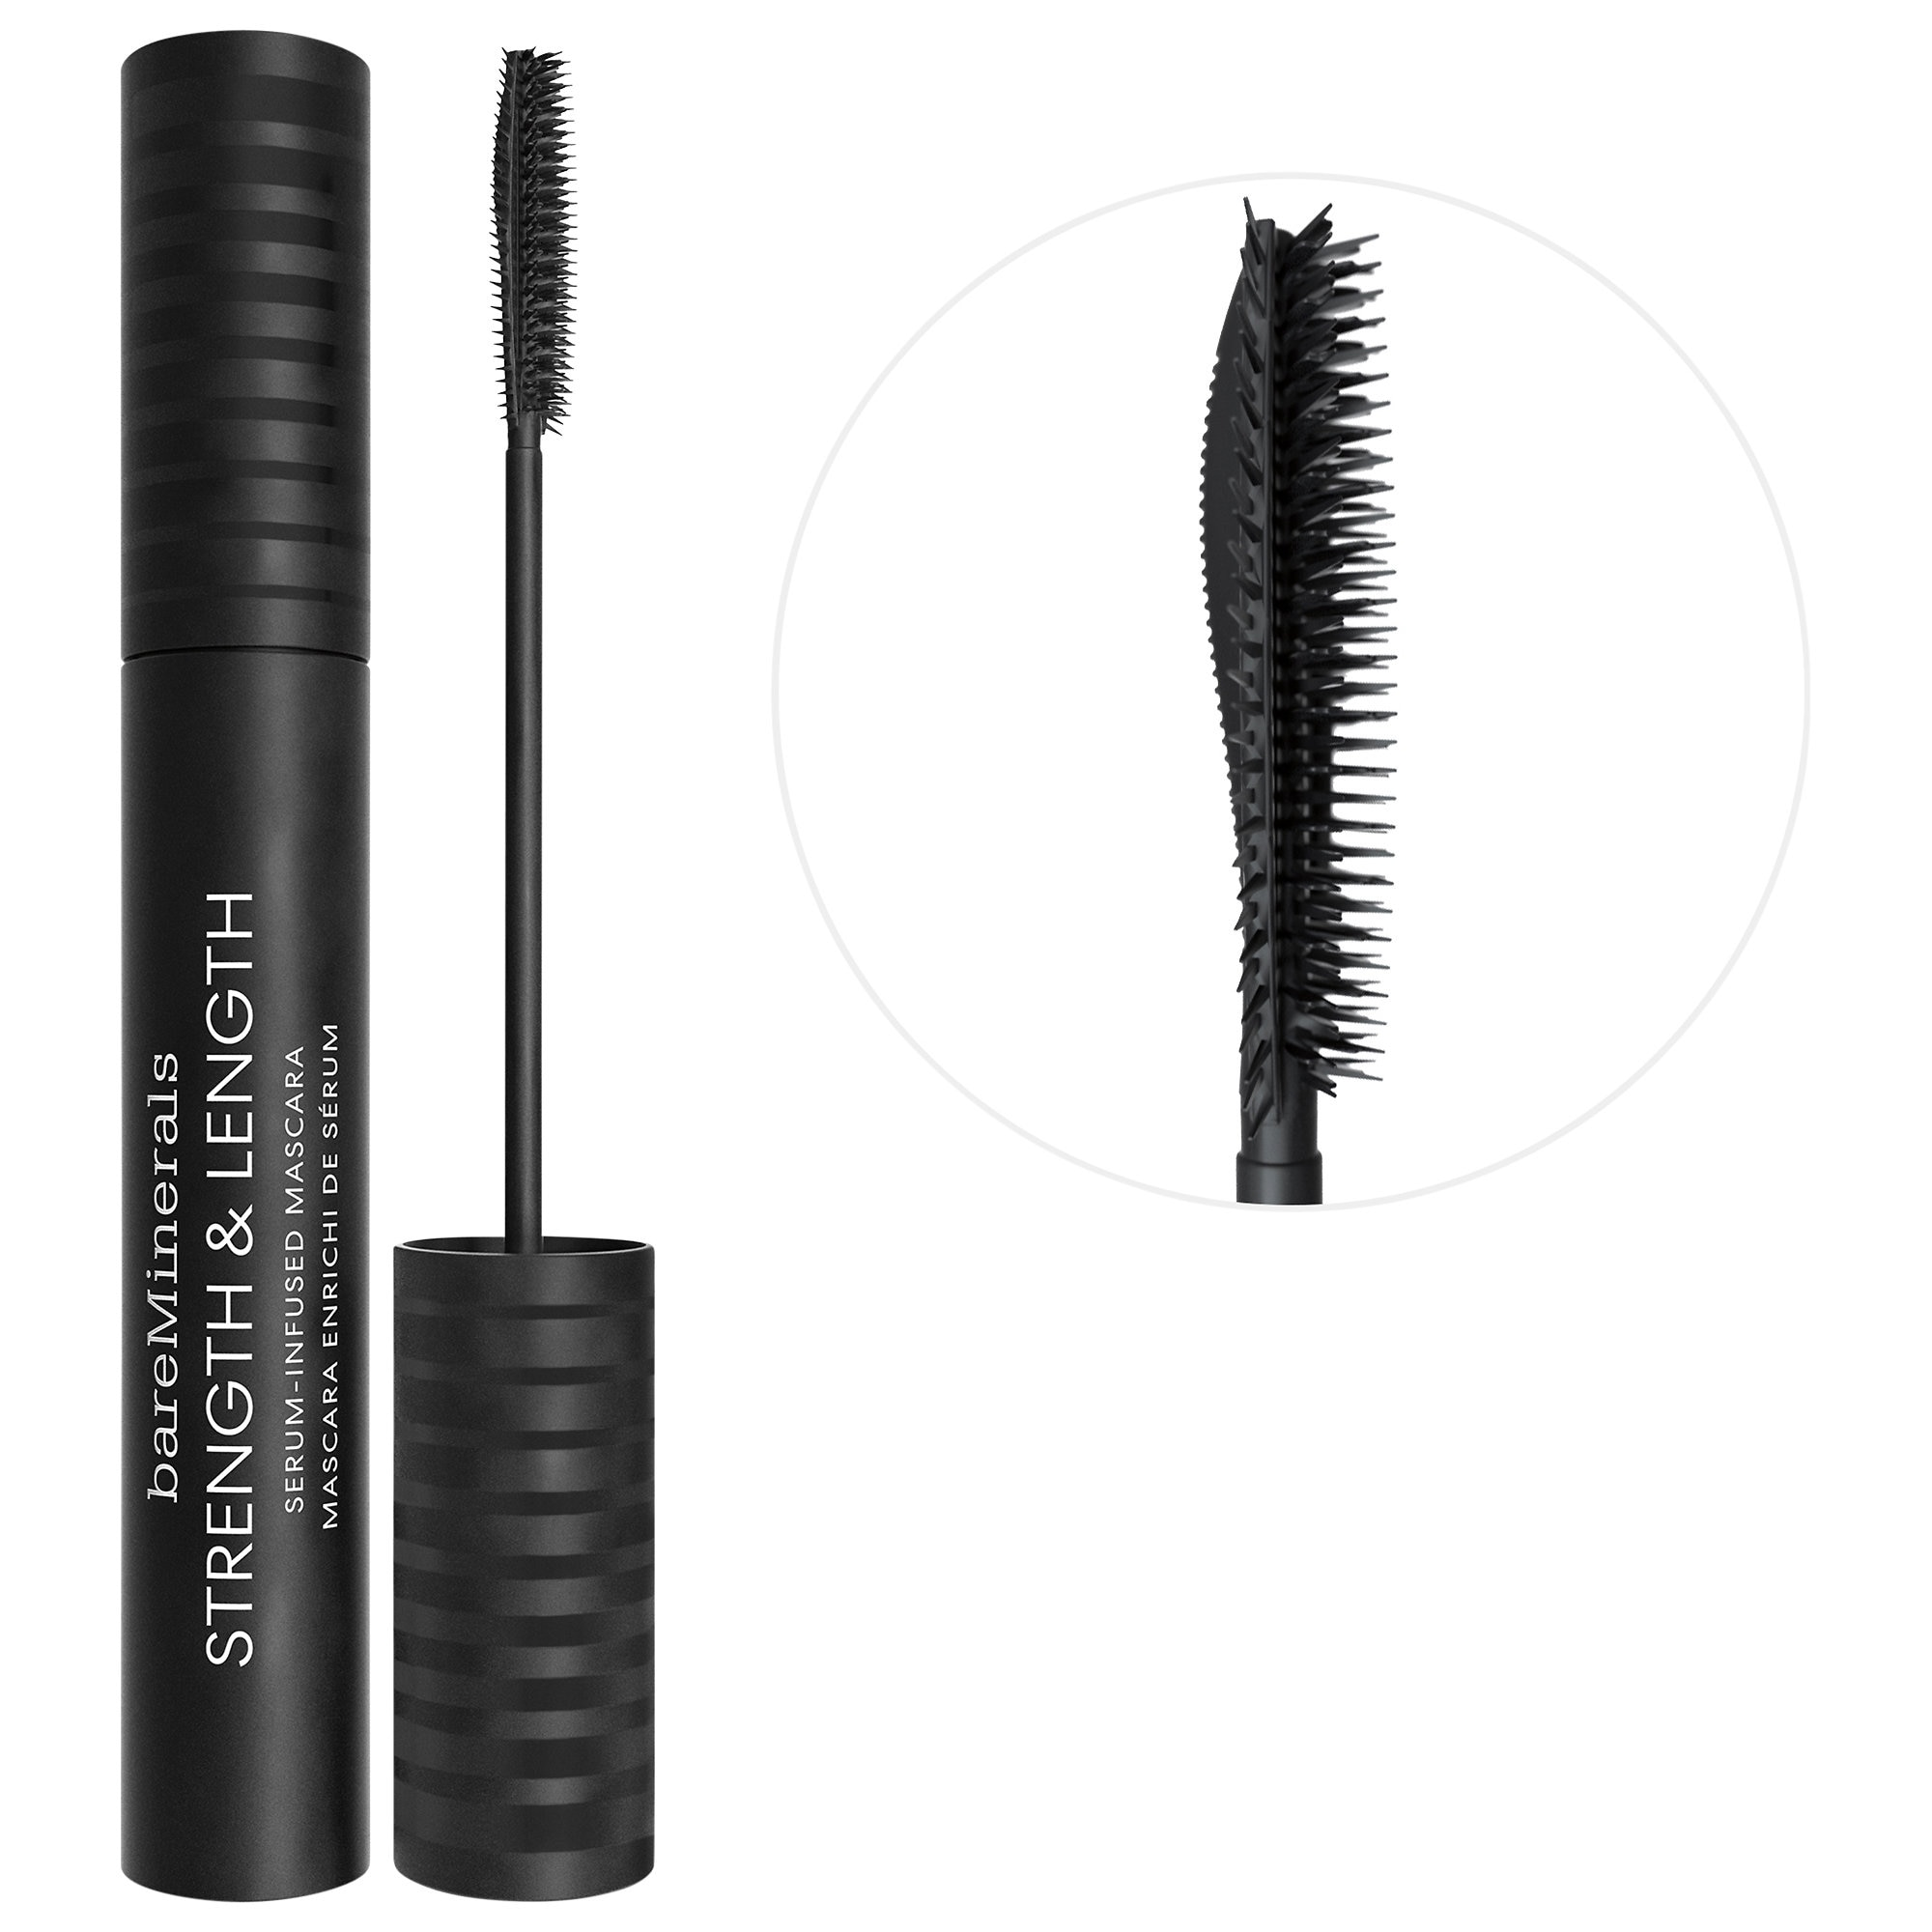 Bareminerals - Strength & Length Serum-Infused Mascara